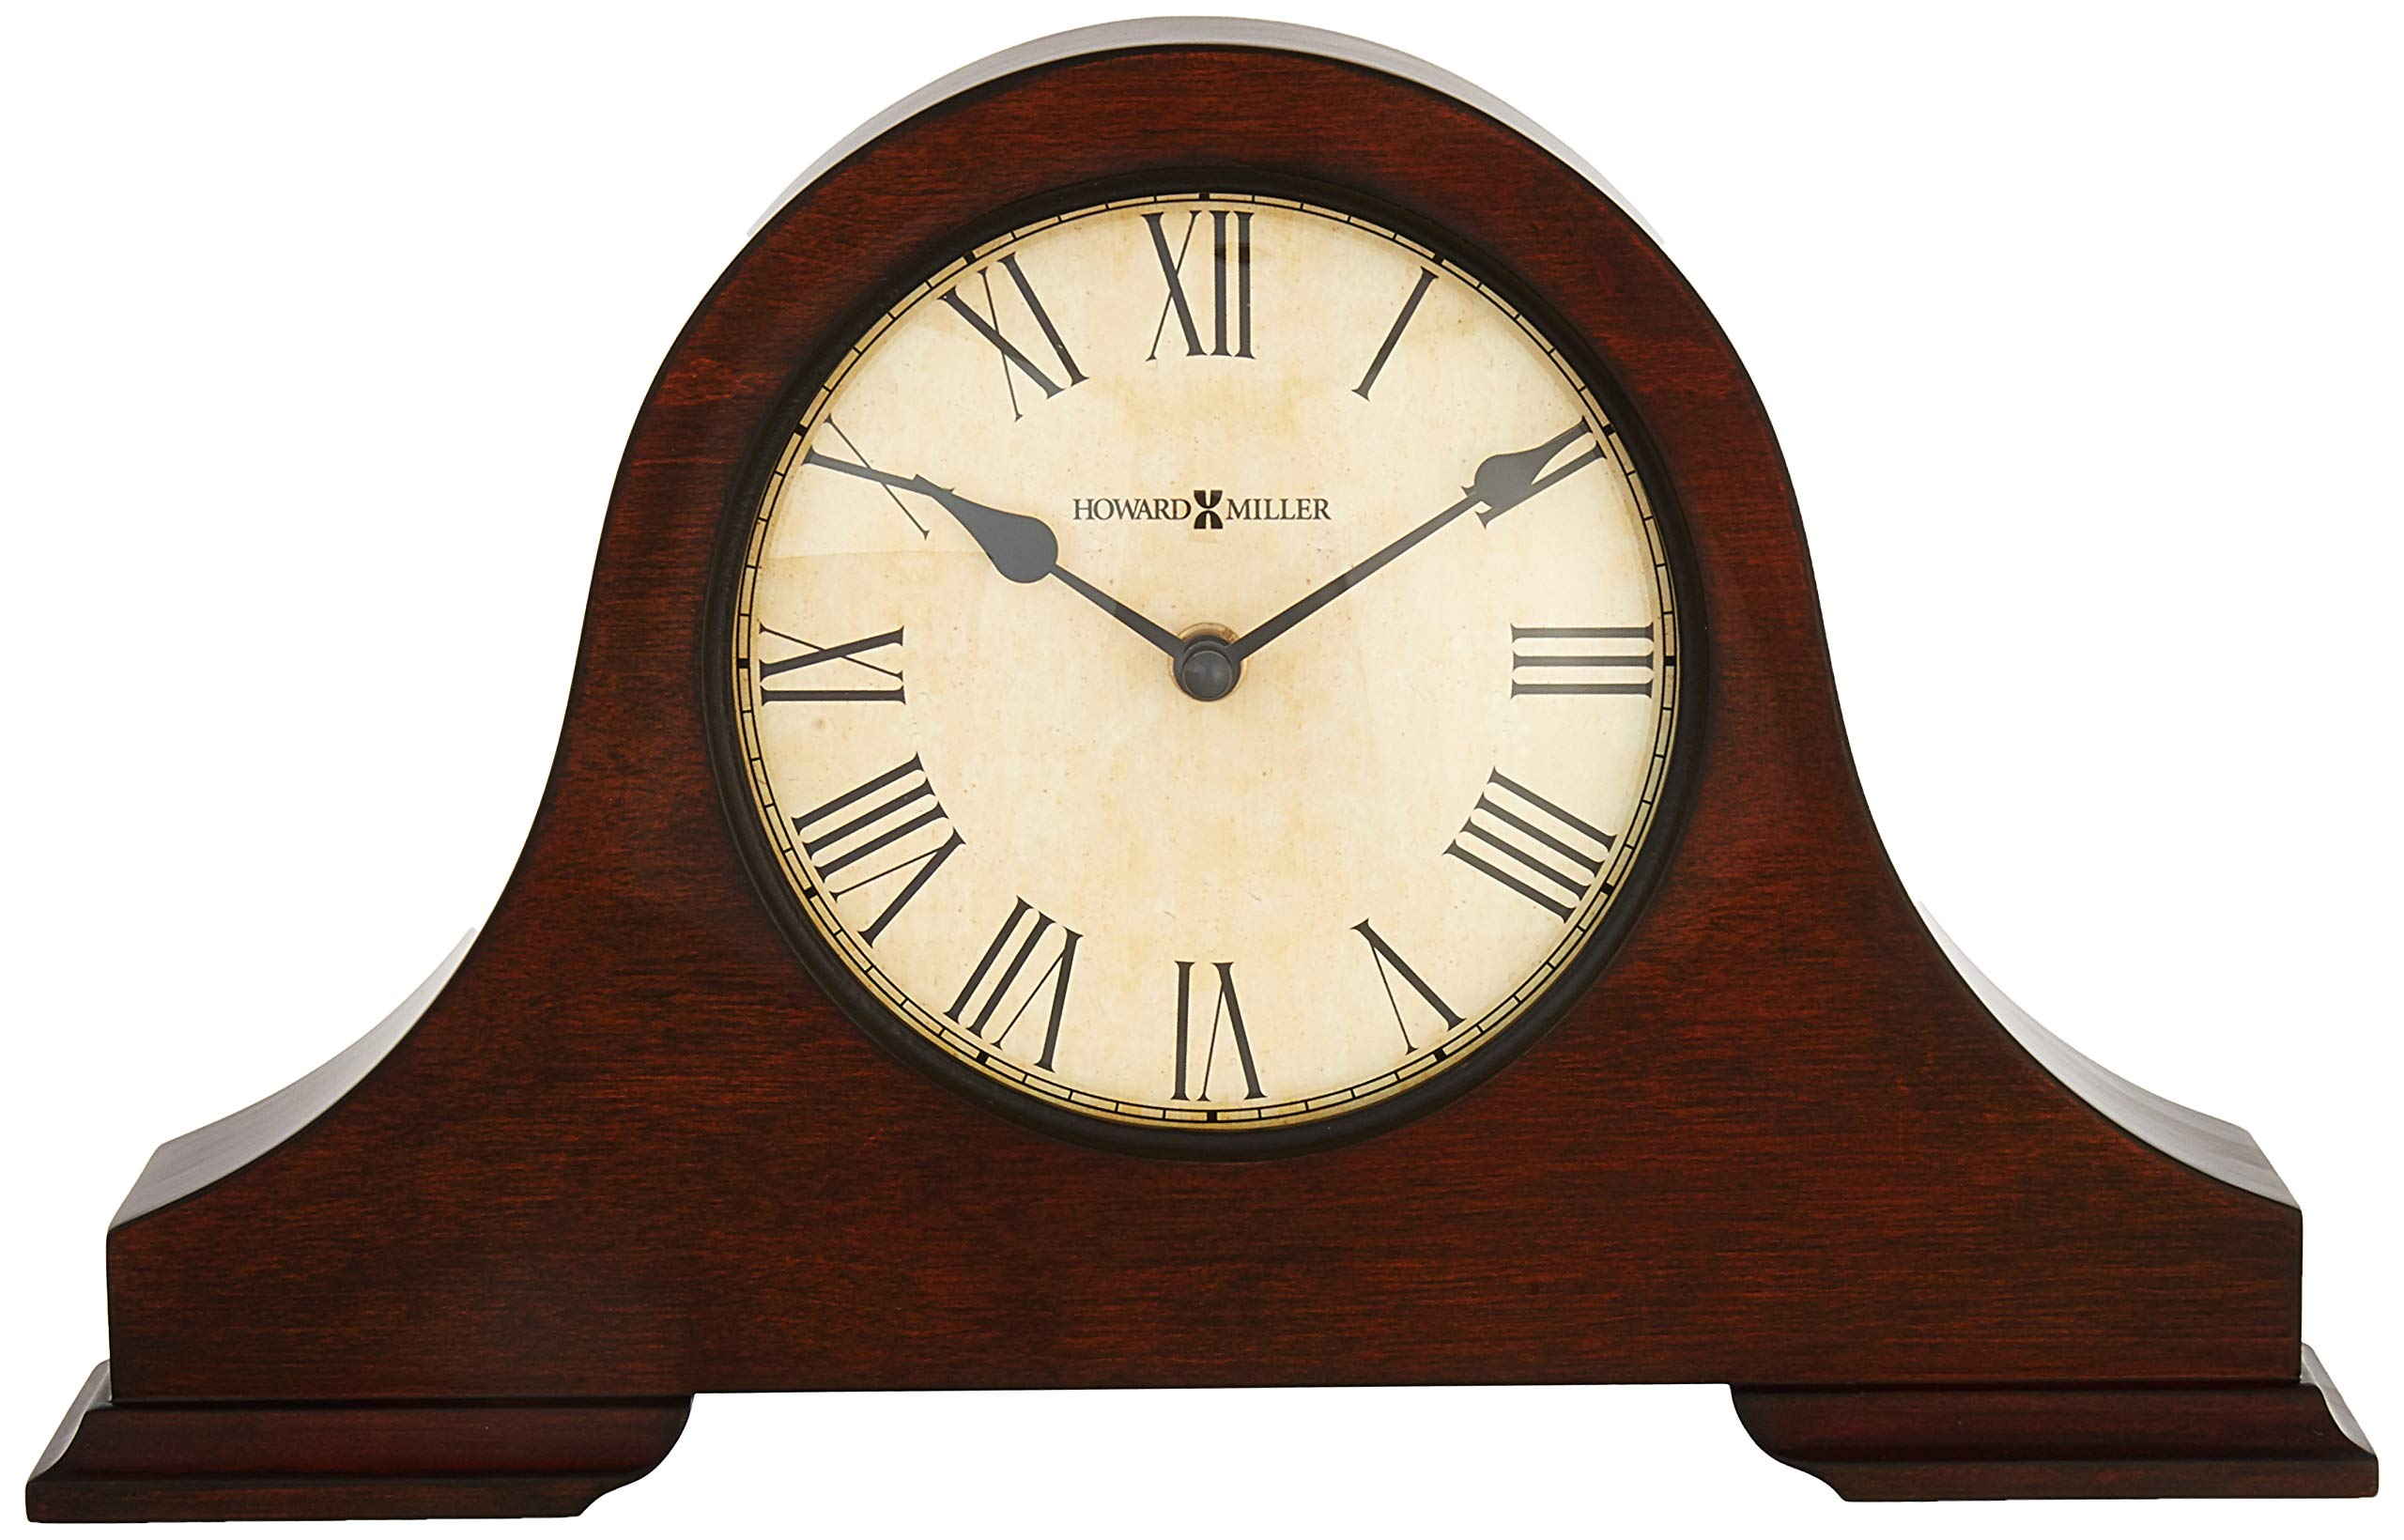 Howard Miller 635-143 Humphrey Mantel Clock by Howard Miller